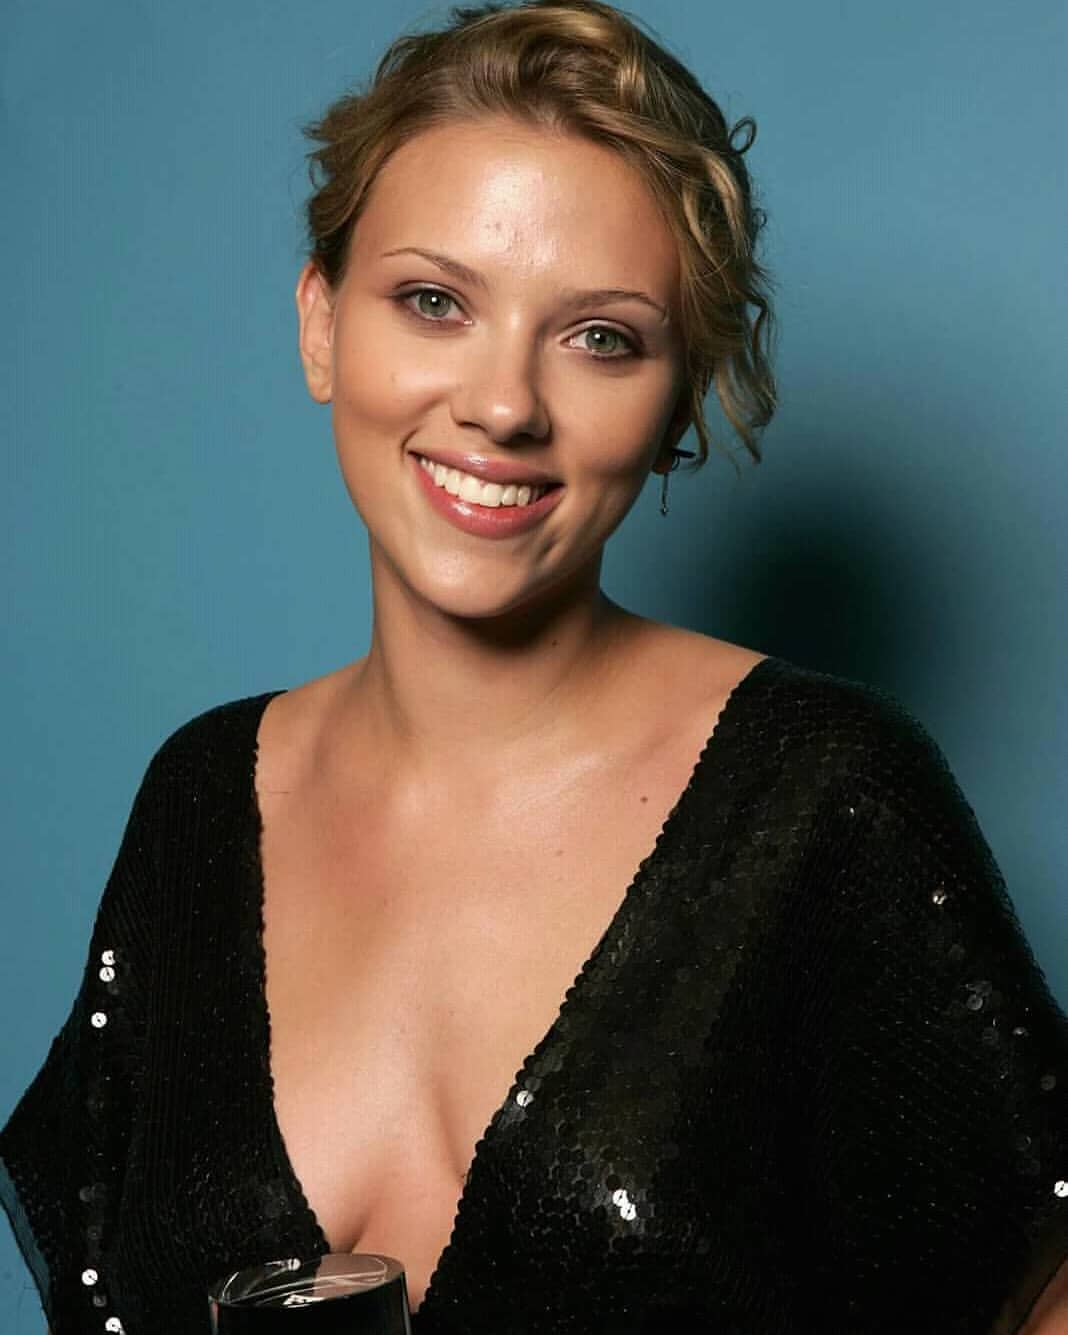 Scarlett Johansson hot cleavage photos